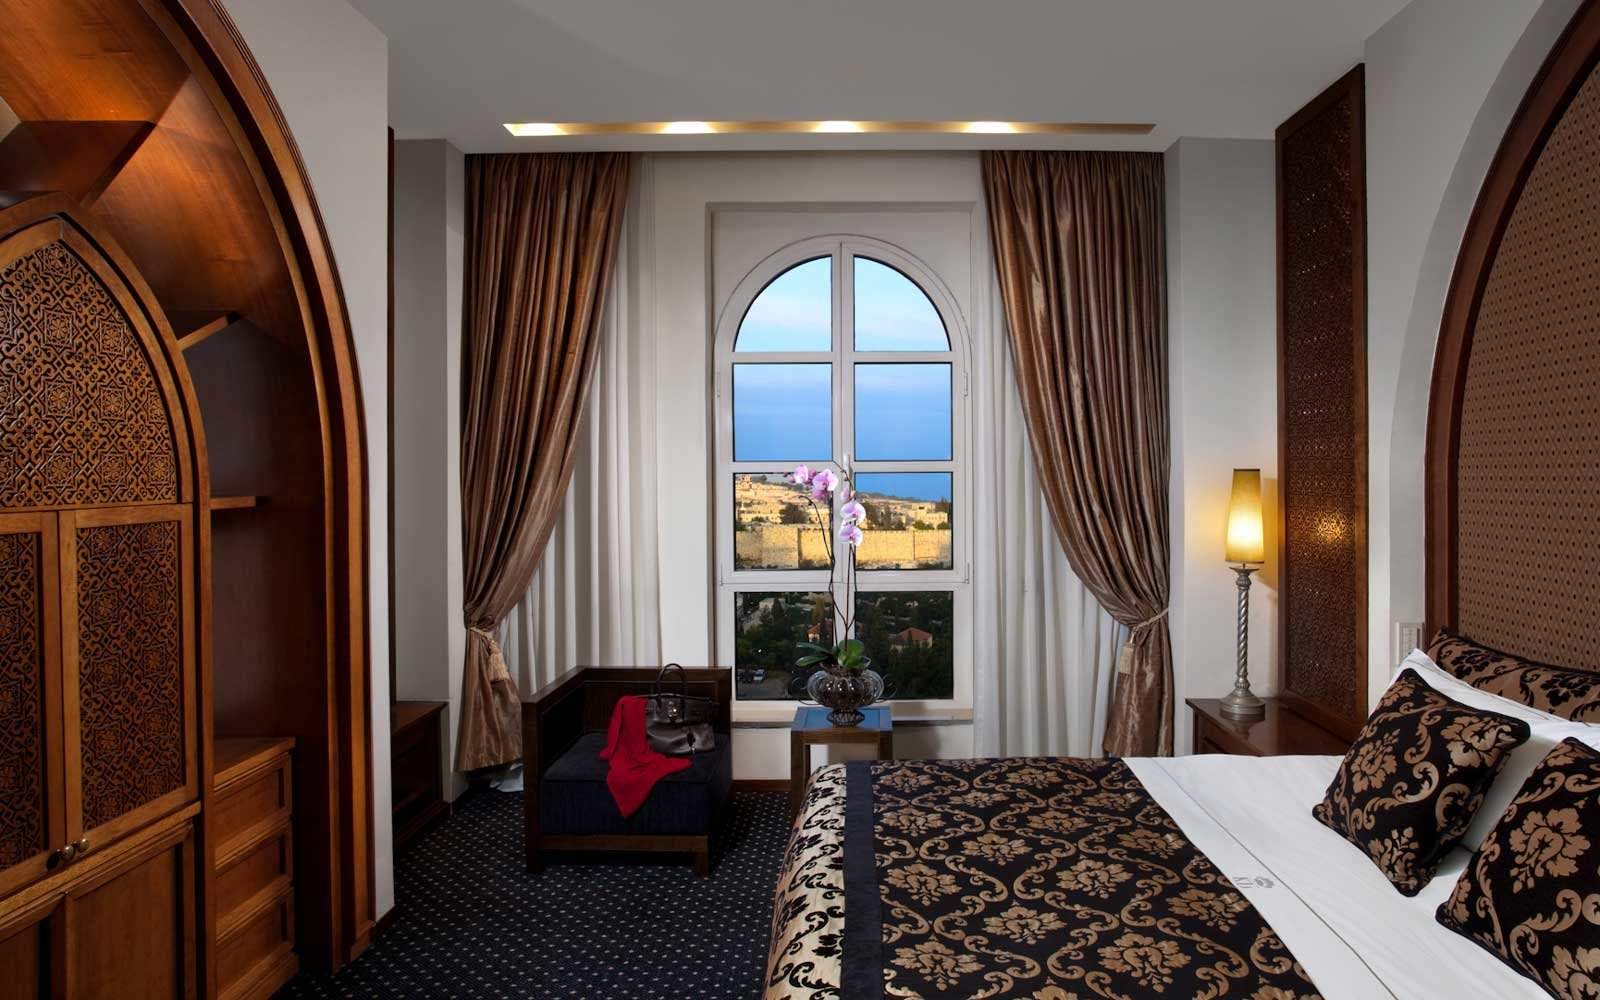 Room at the King David Hotel, in Jerusalem